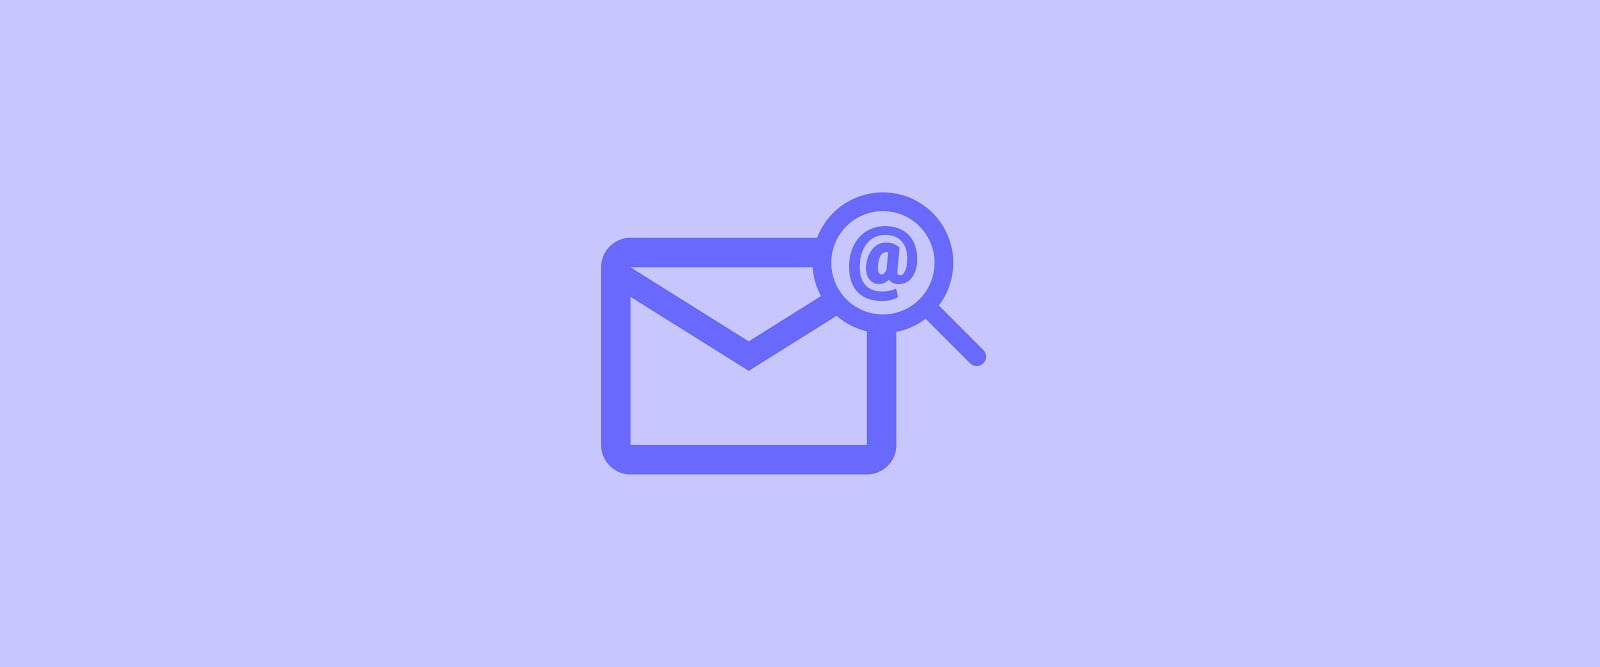 How to find email address in less than 60 seconds